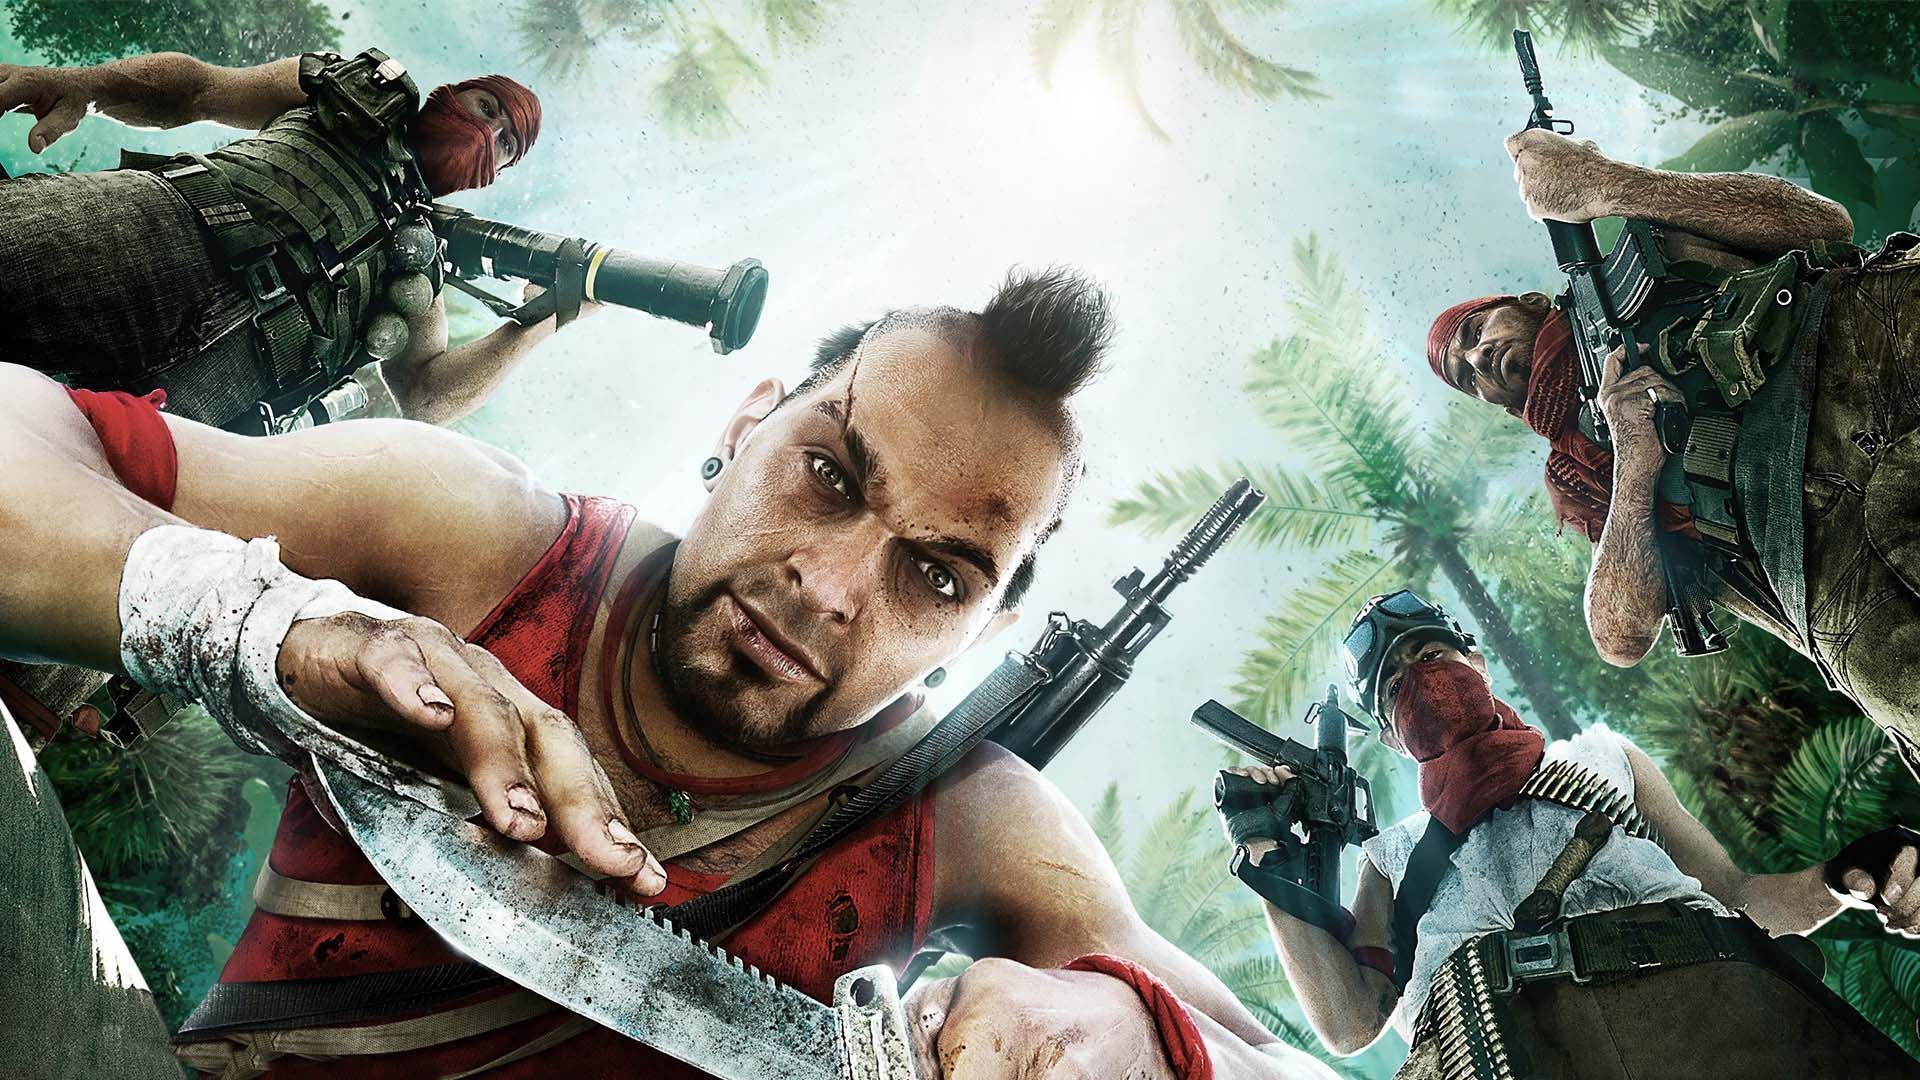 Vaas Far Cry 3 02 Hd Games Wallpapers For Mobile And Desktop